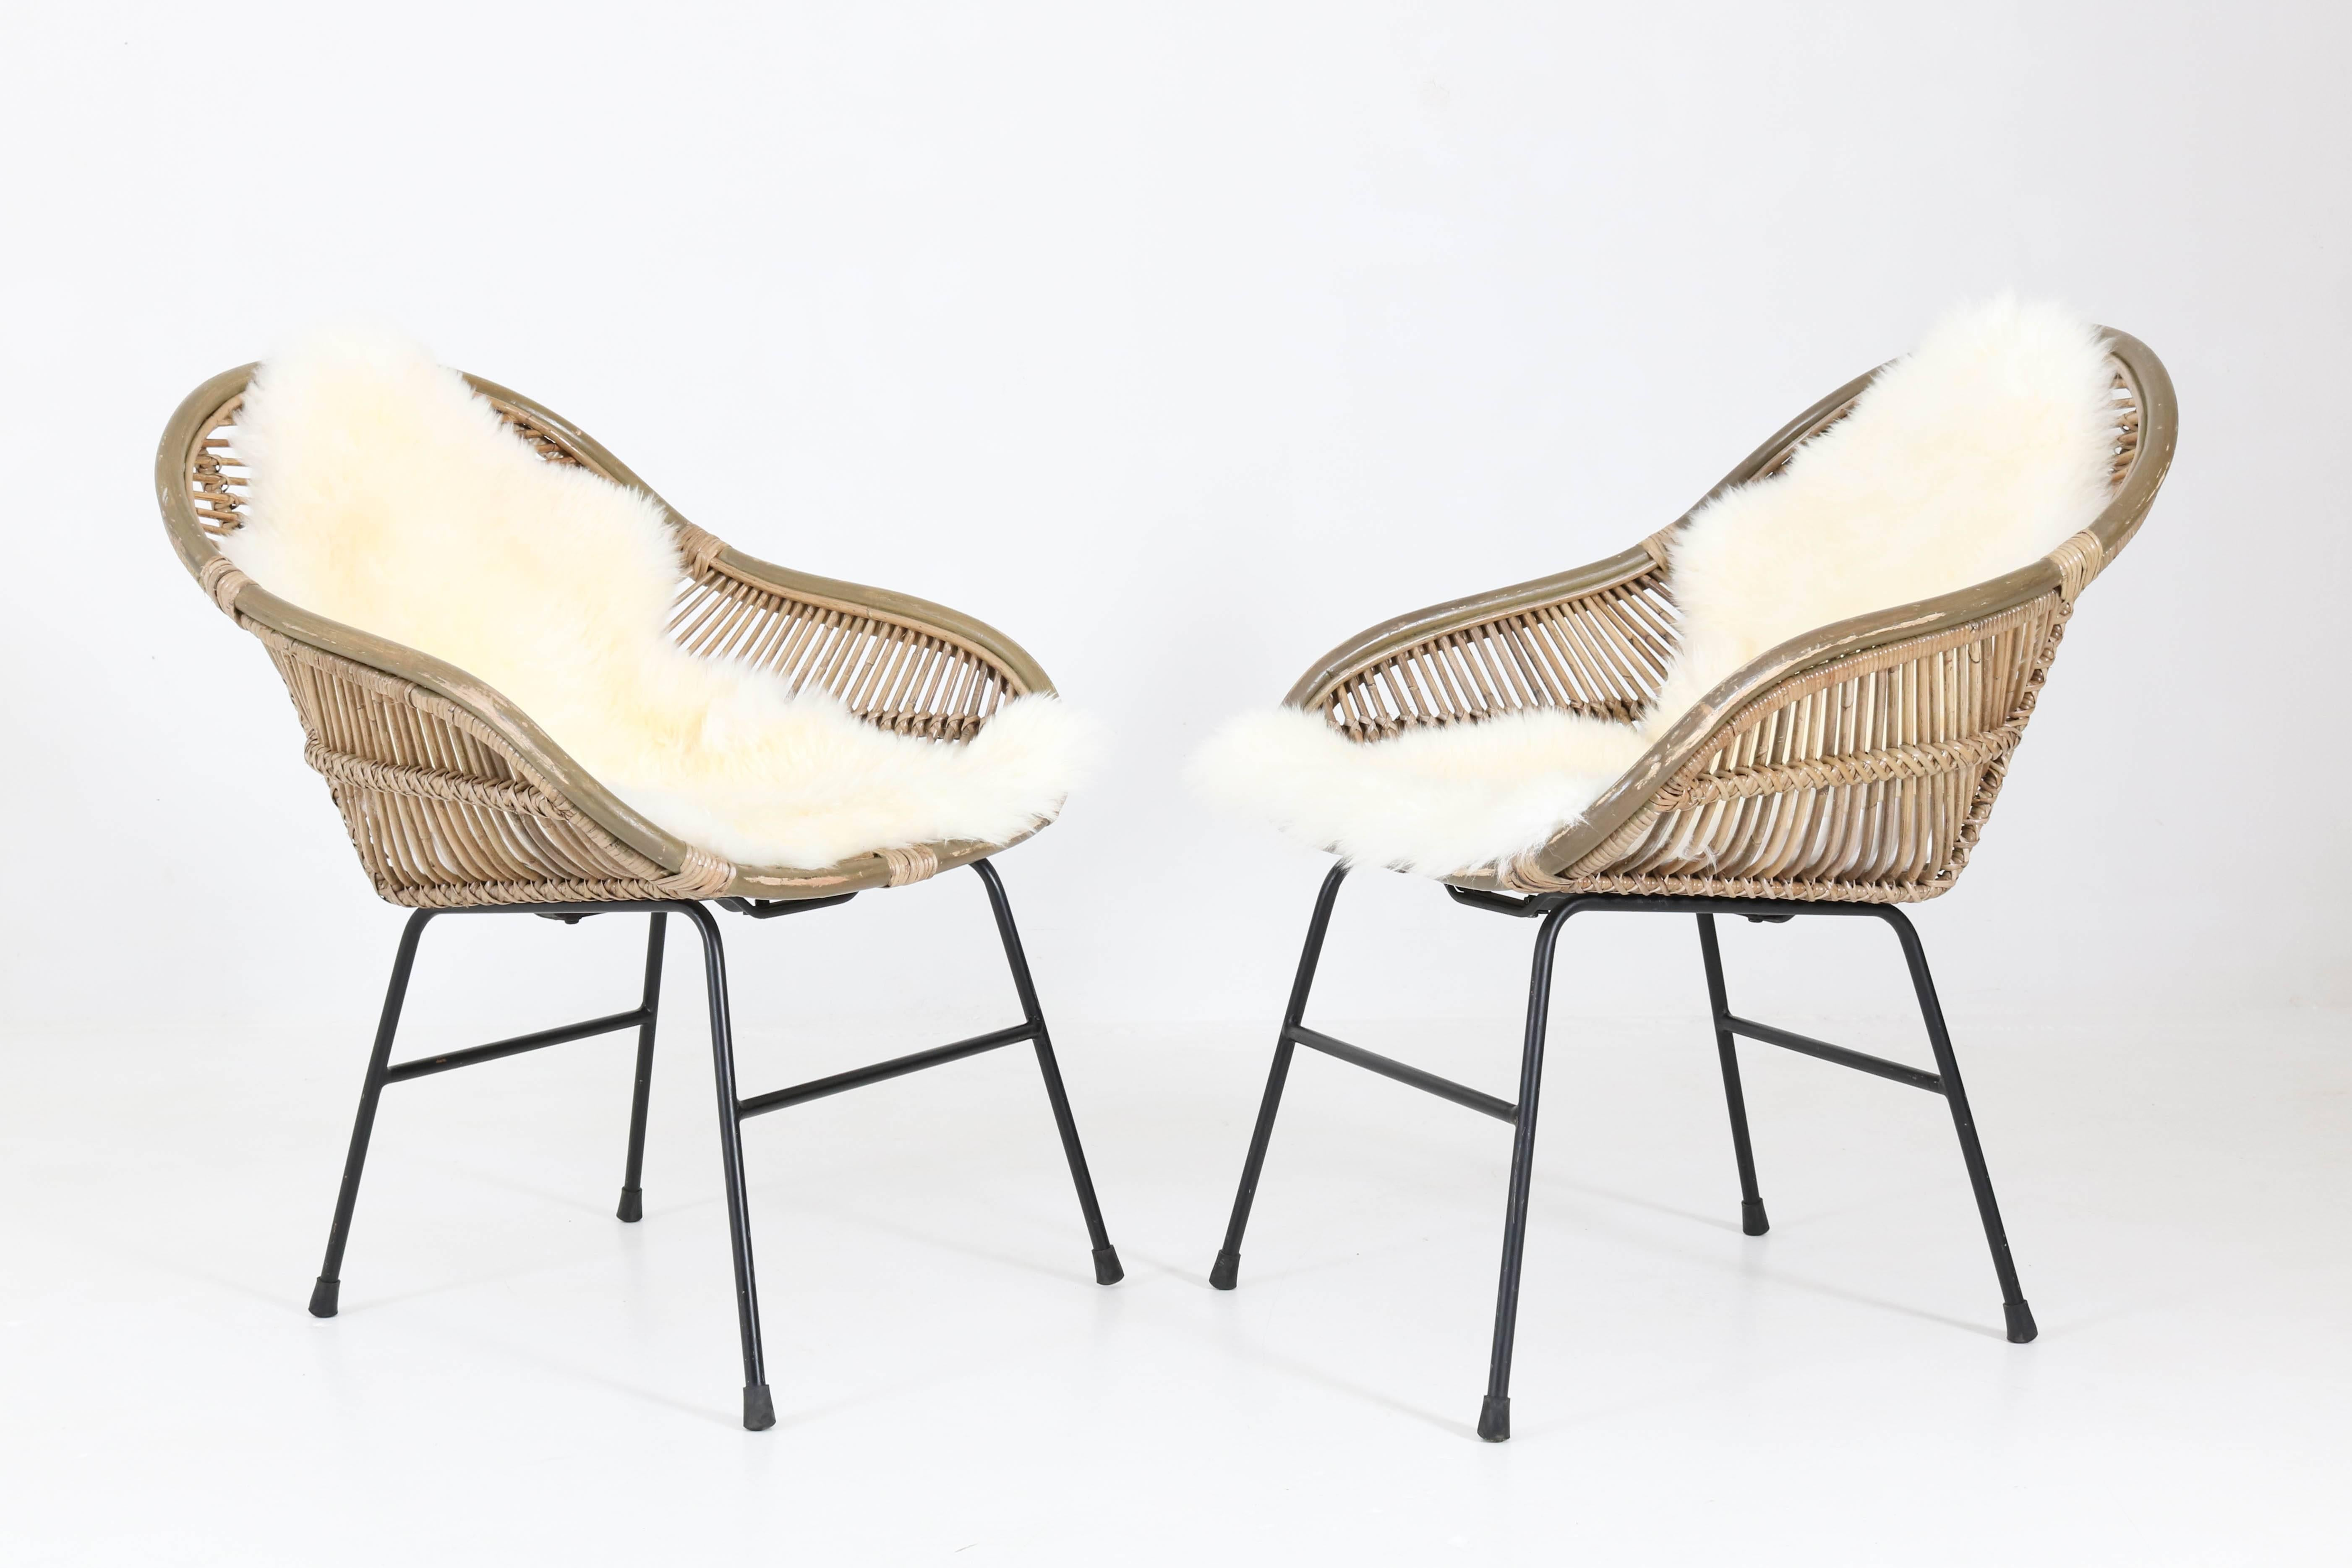 Perfect Lacquered Pair Of French Mid Century Modern Rattan Chairs, 1960s For Sale